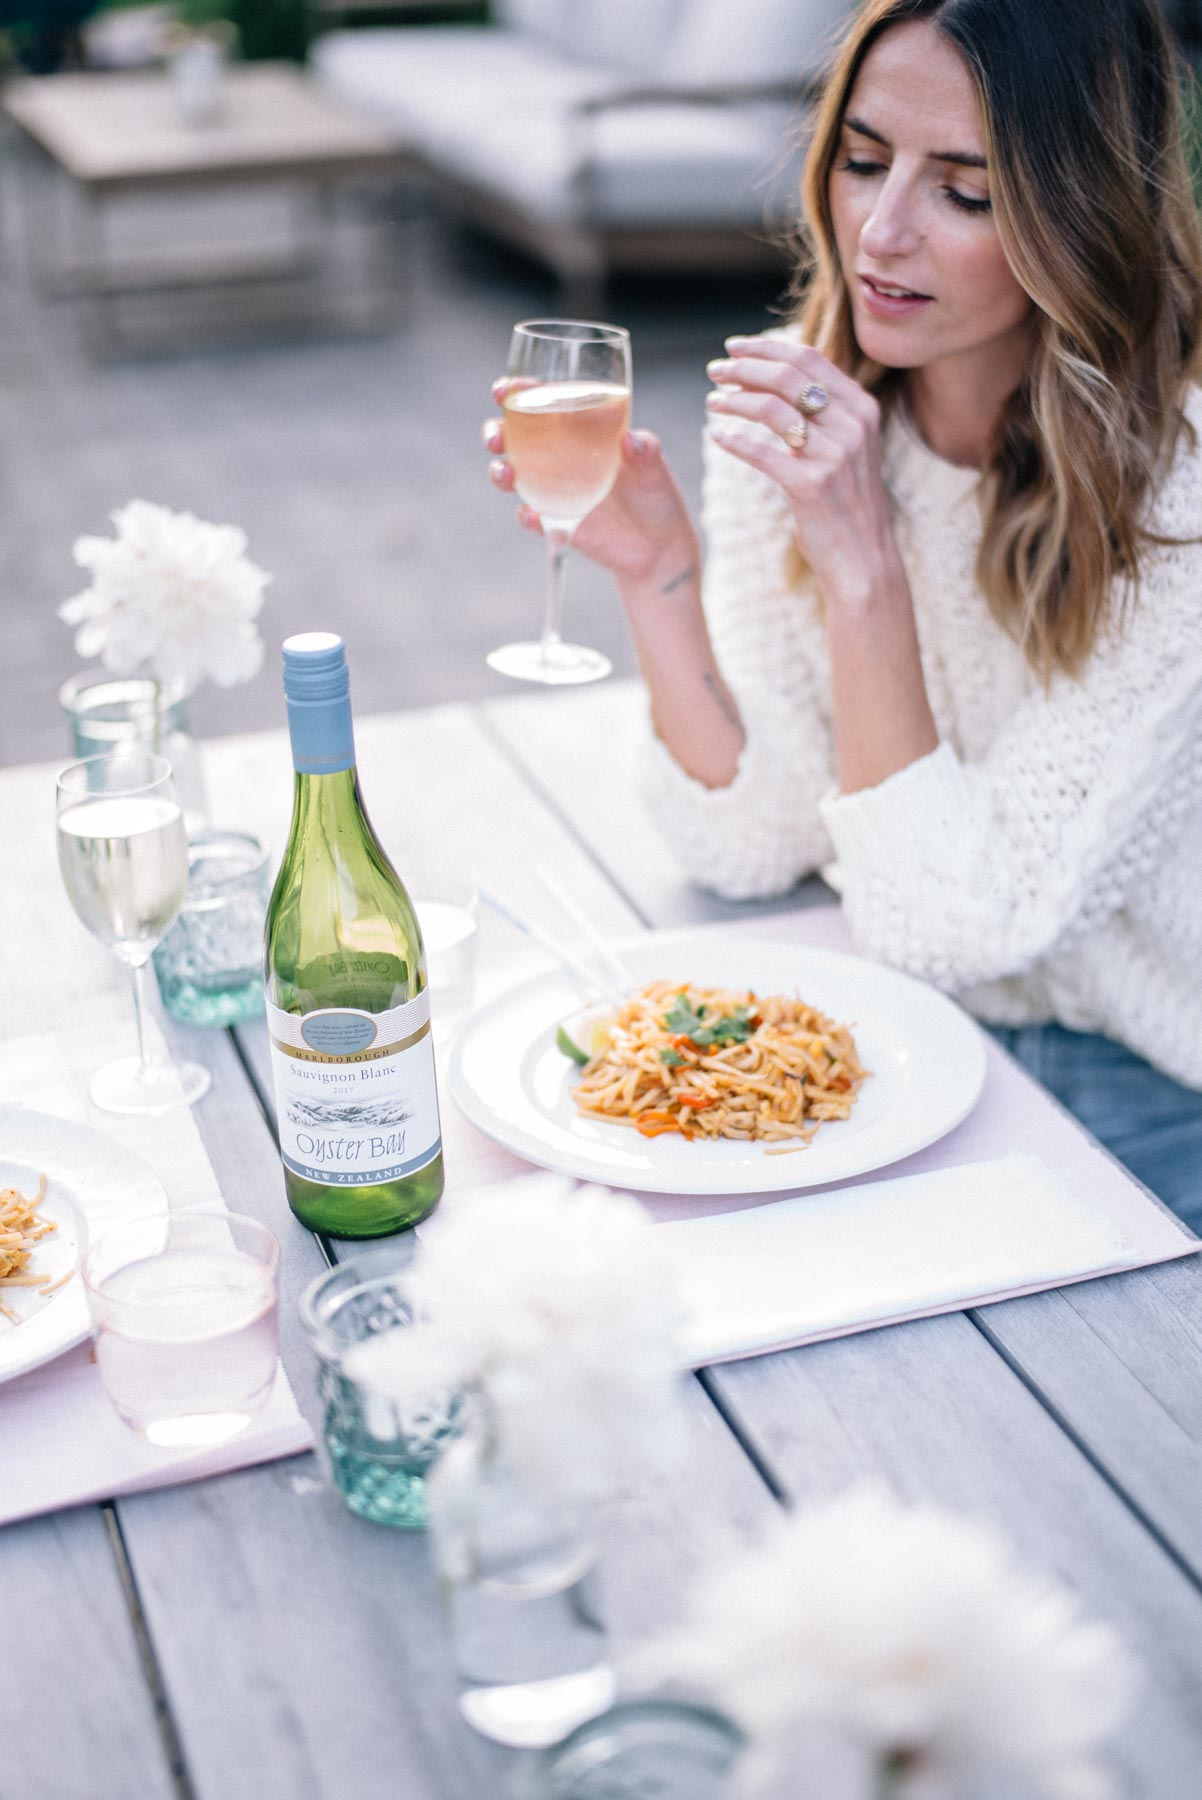 Jess Ann Kirby suggests setting the table and enjoying chilled wine for an at-home date night